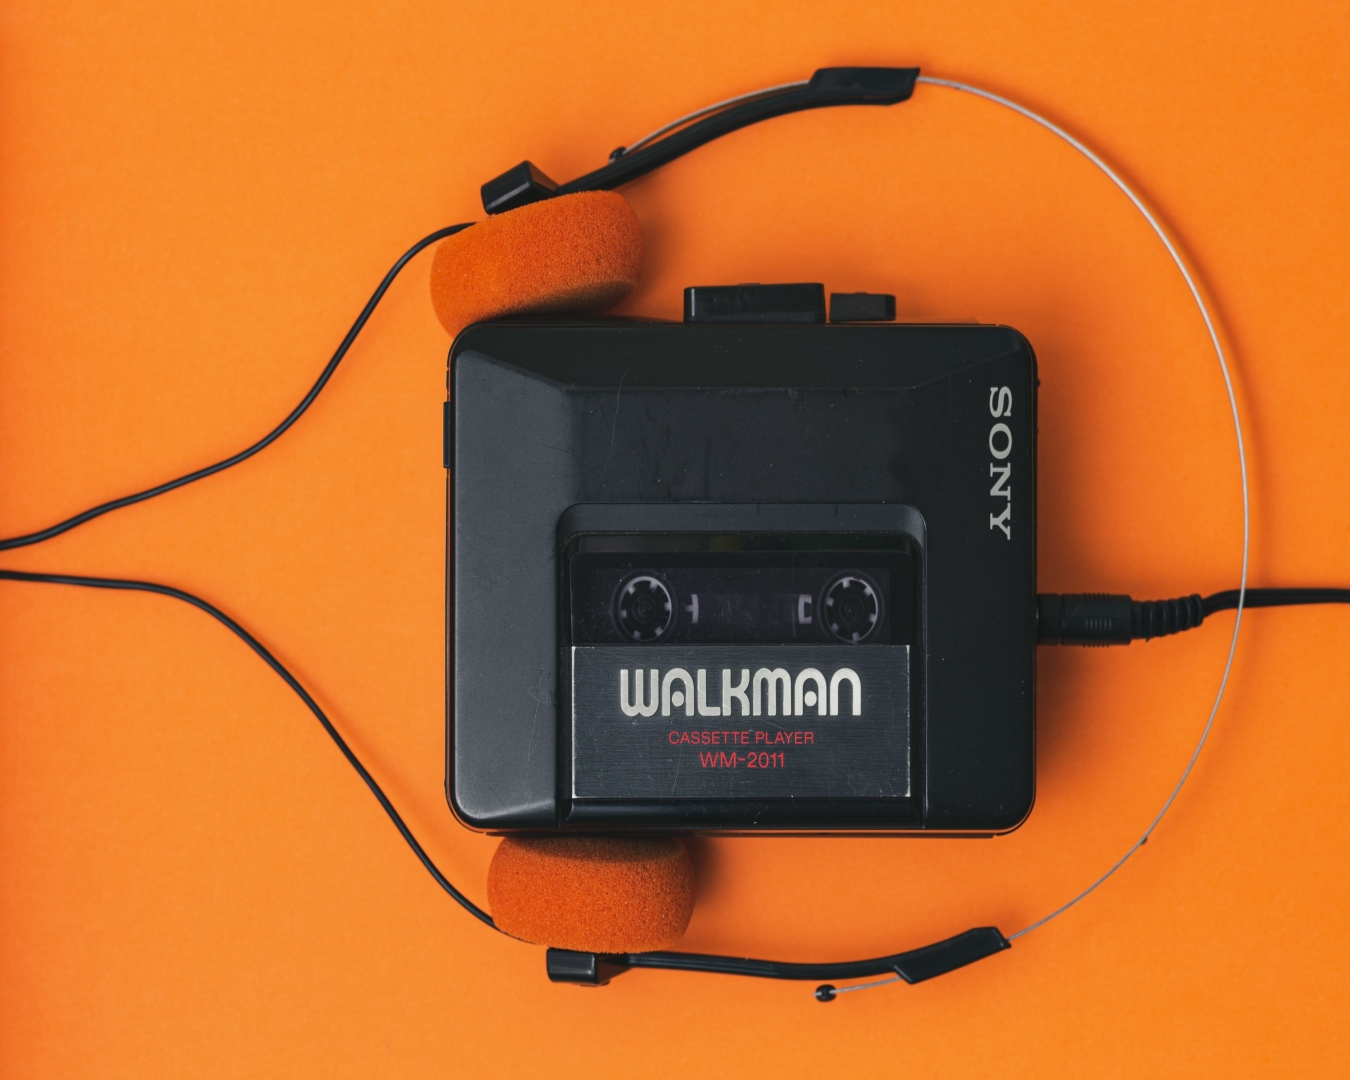 Old school cassette player with black and orange headphones on a bright orange background.